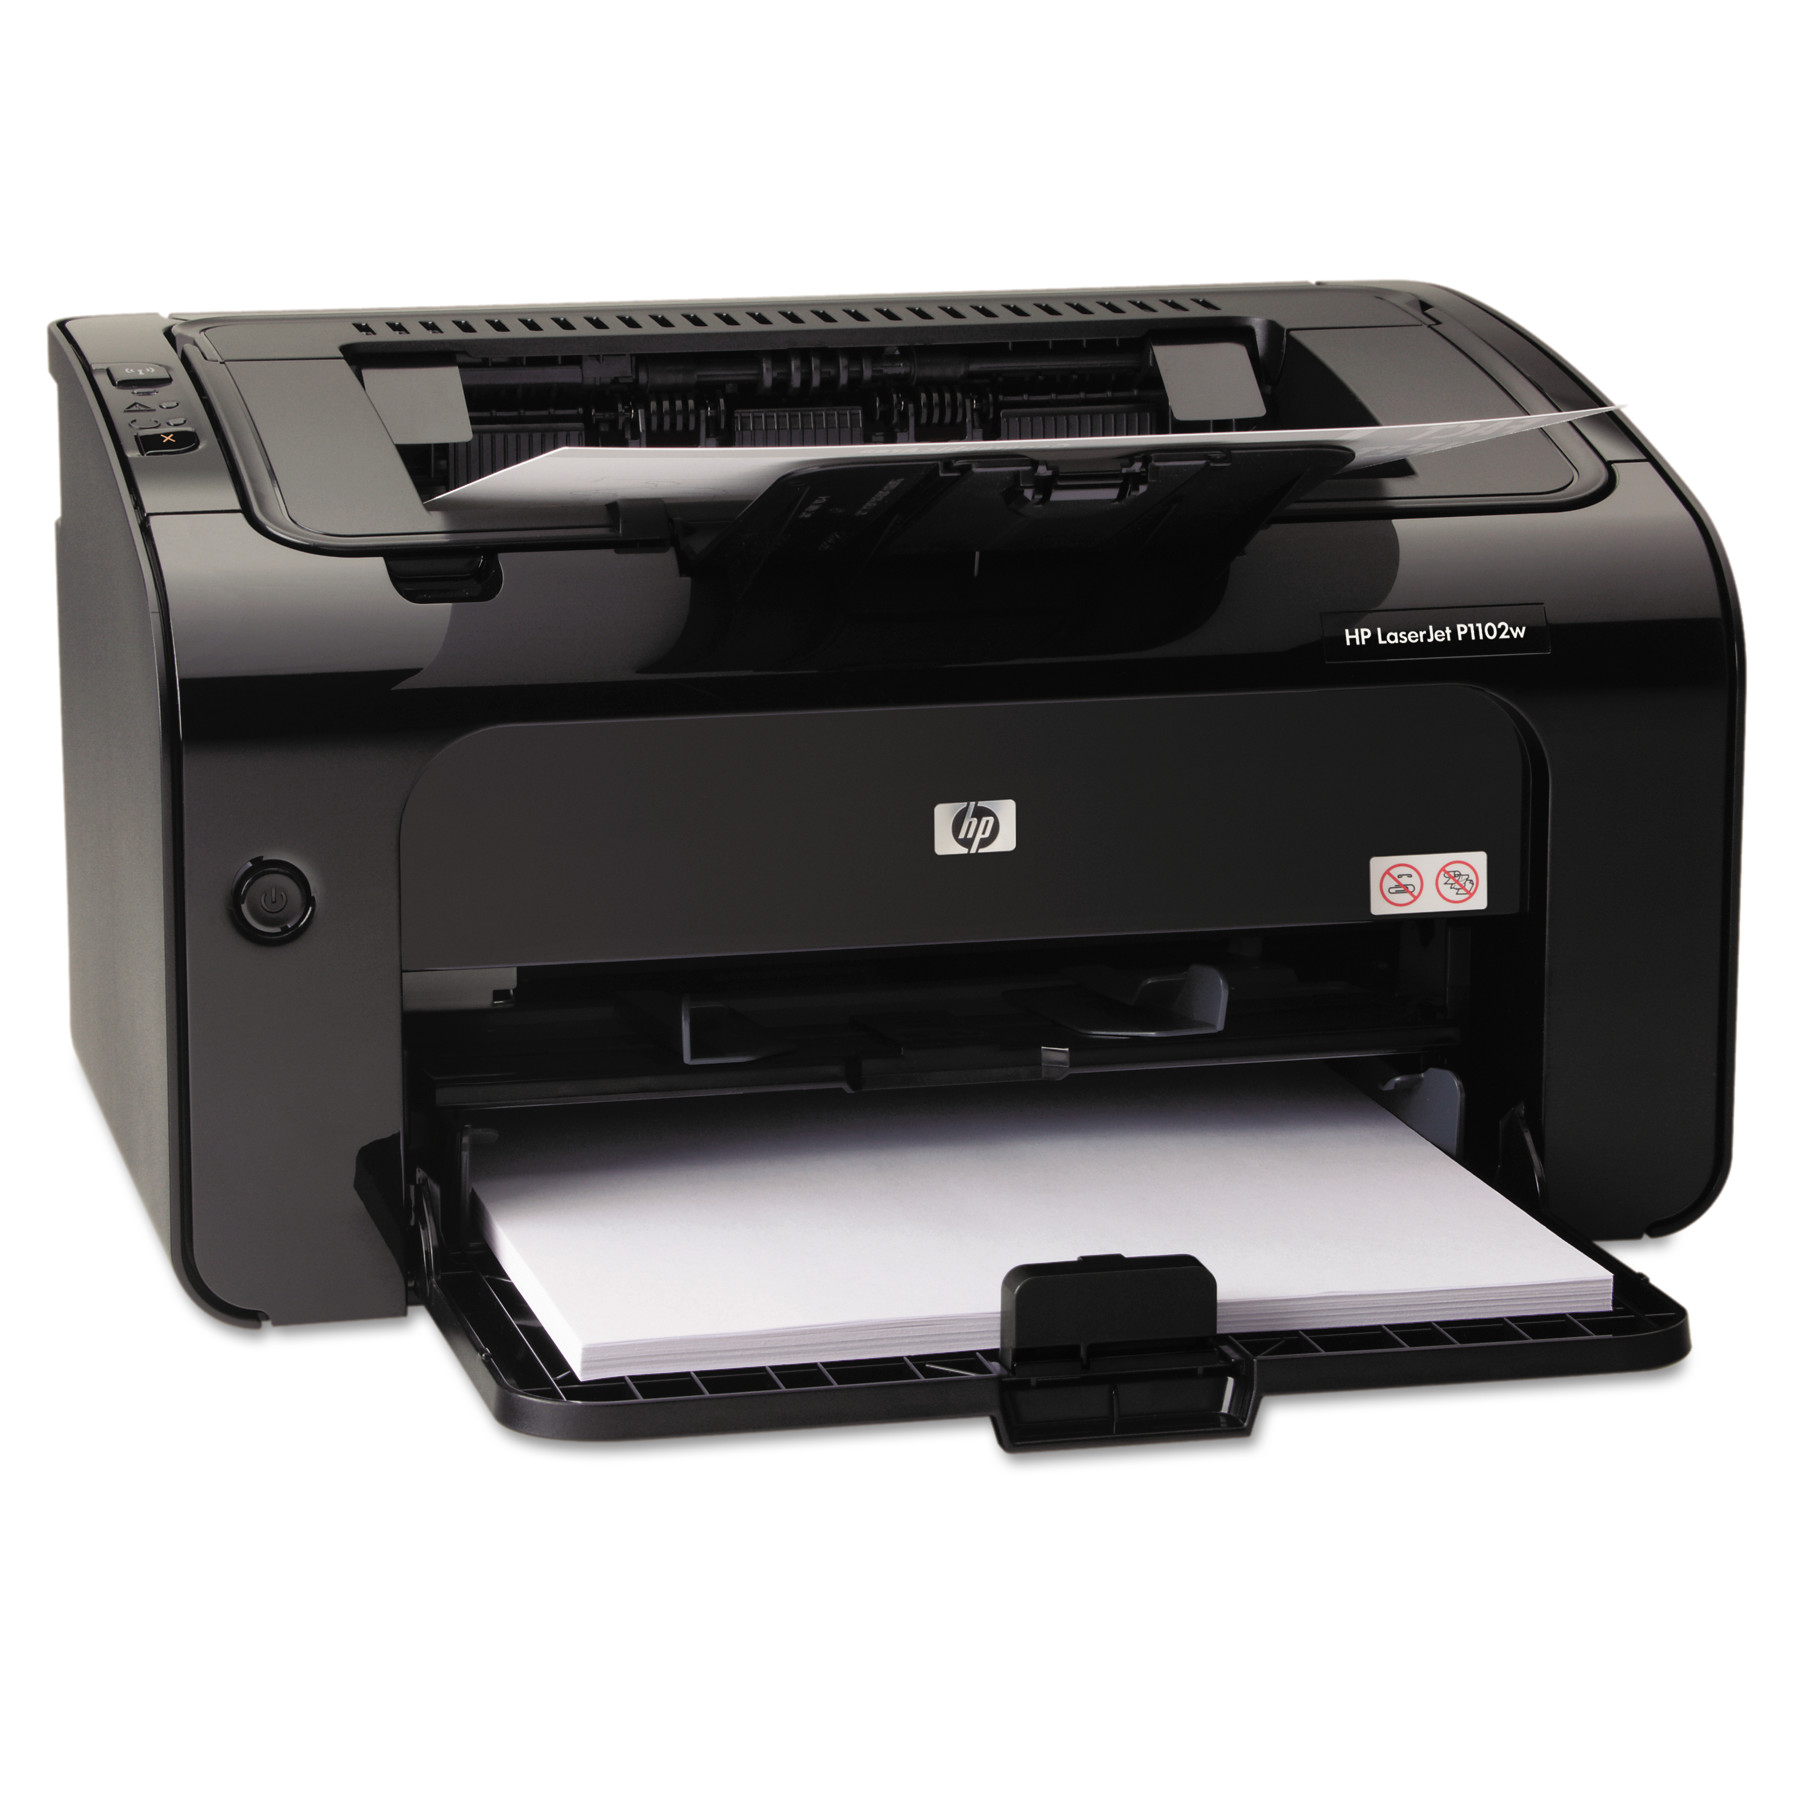 HP 1102 laser printer: specifications, cartridge, reviews 10